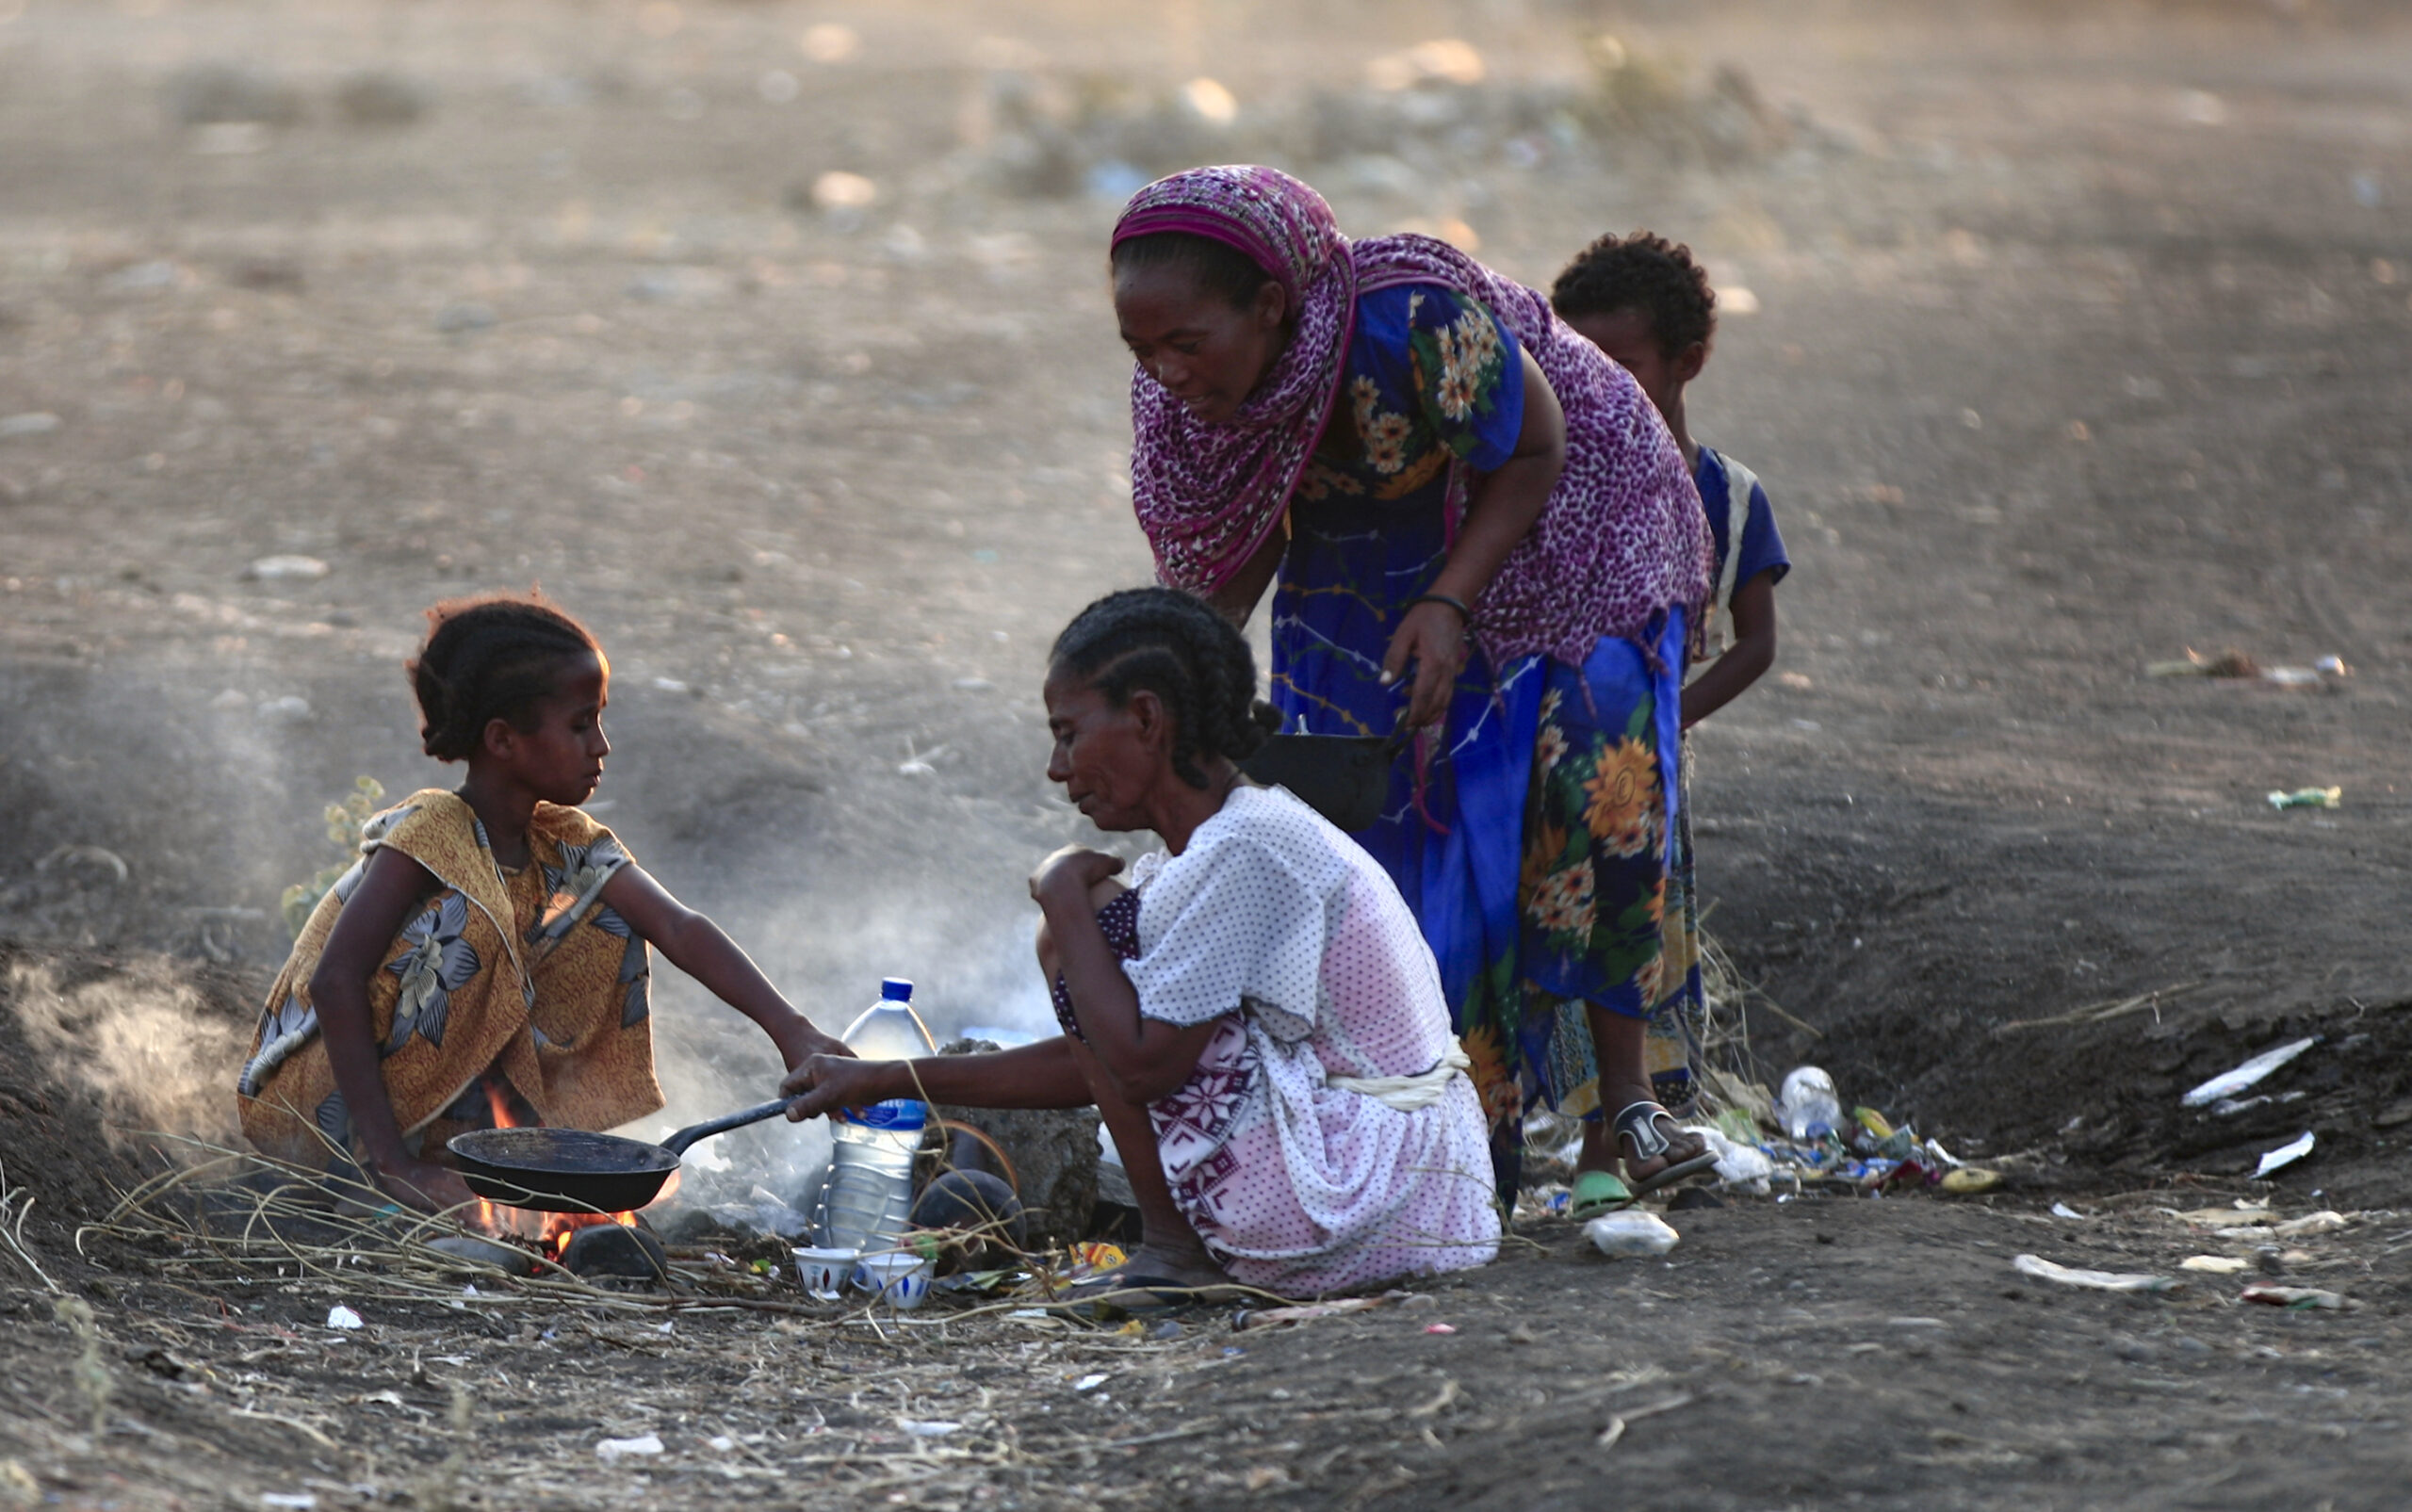 Ethiopian refugees who fled intense fighting in their homeland of Tigray, cook their meal in the border reception centre of Hamdiyet, in the eastern Sudanese state of Kasala, on November 14, 2020. - Ethiopia's Prime Minister Abiy Ahmed, winner of last year's Nobel Peace Prize, ordered military operations in Tigray last week, shocking the international community which fears the start of a long and bloody civil war. (Photo by Ebrahim HAMID / AFP) (Photo by EBRAHIM HAMID/AFP via Getty Images)